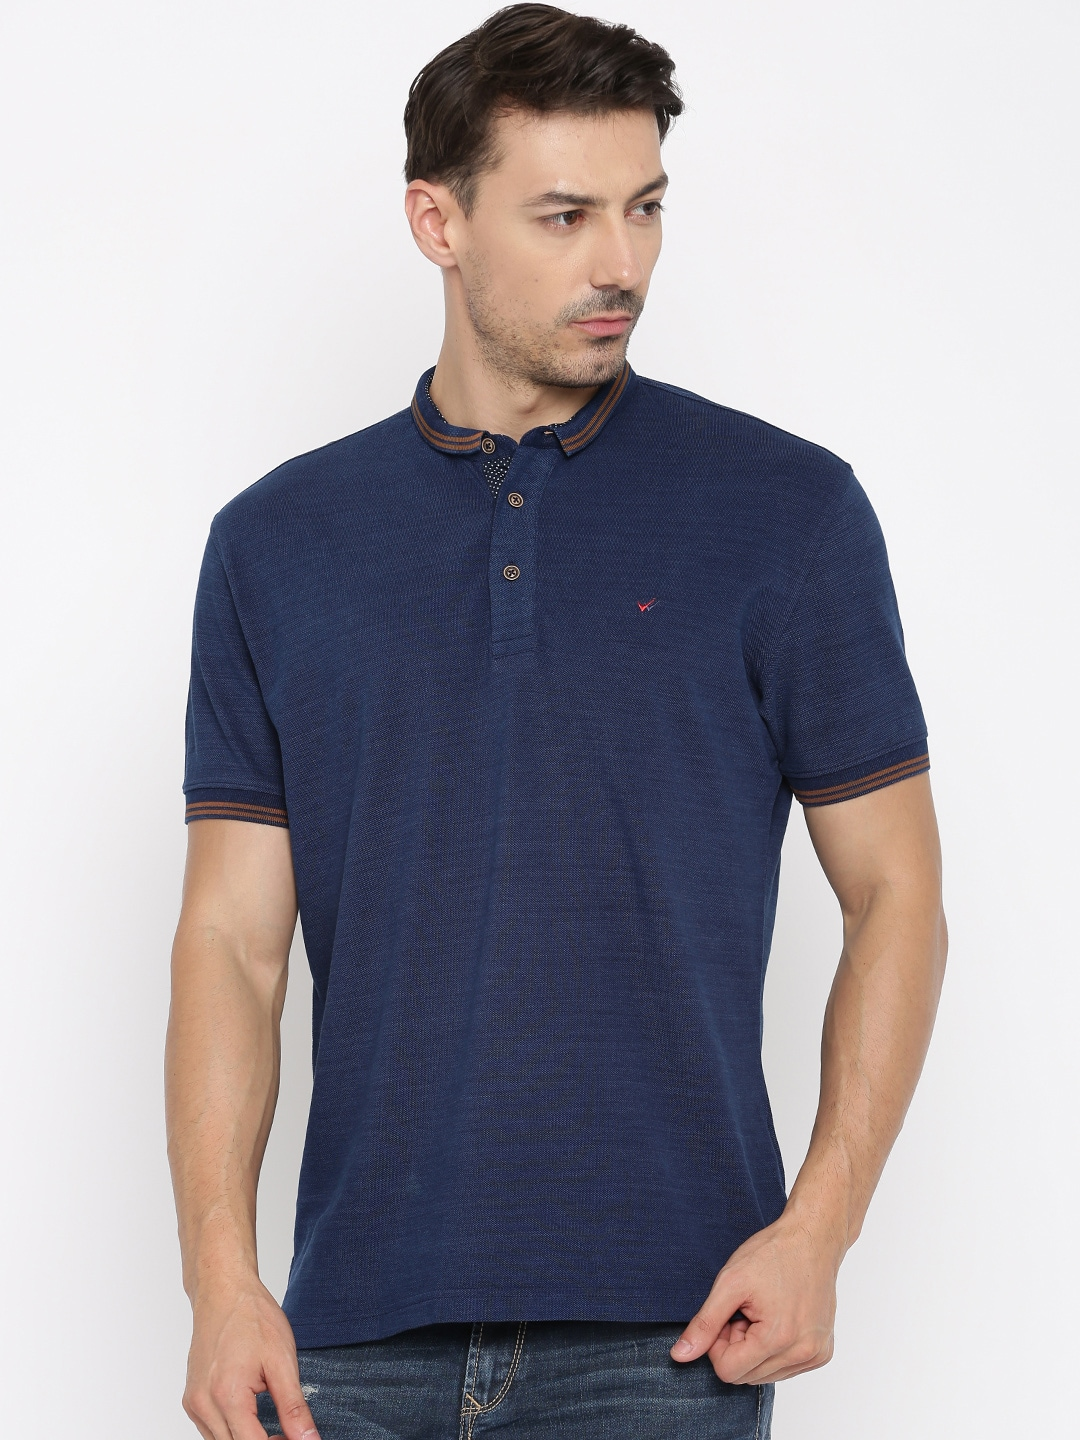 c2f51459a Wills lifestyle 8902789697292 Men Navy Solid Polo T Shirt- Price in India